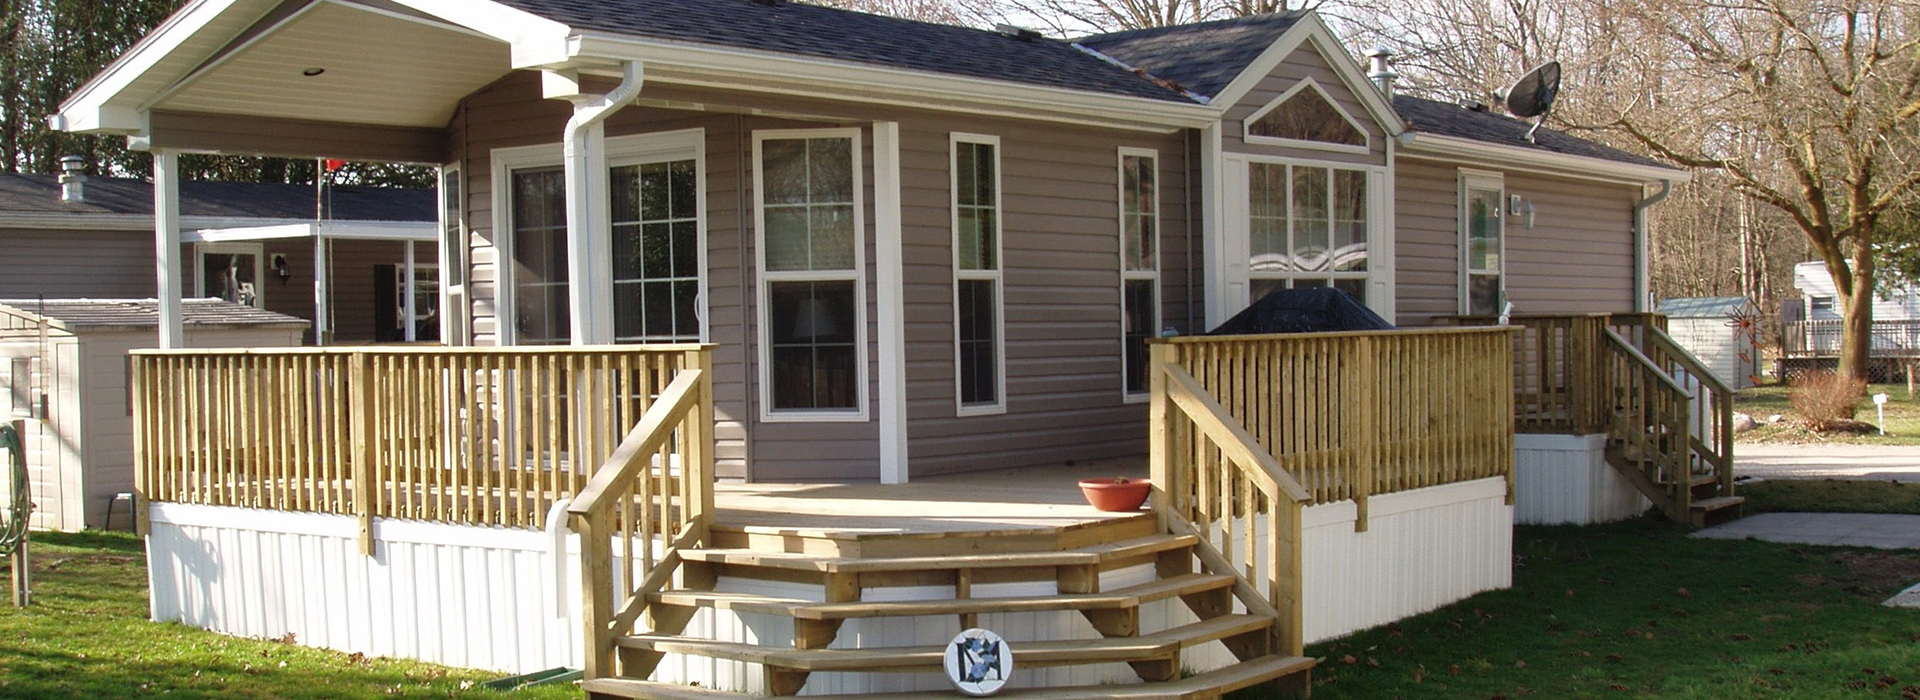 Complete Mobile Home Remodeling Services in Fort Worth, Texas on mobile home service fairfield il, mobile home supplies, mobile home roofing, mobile home landscape, mobile home windows, mobile home products, mobile photography,